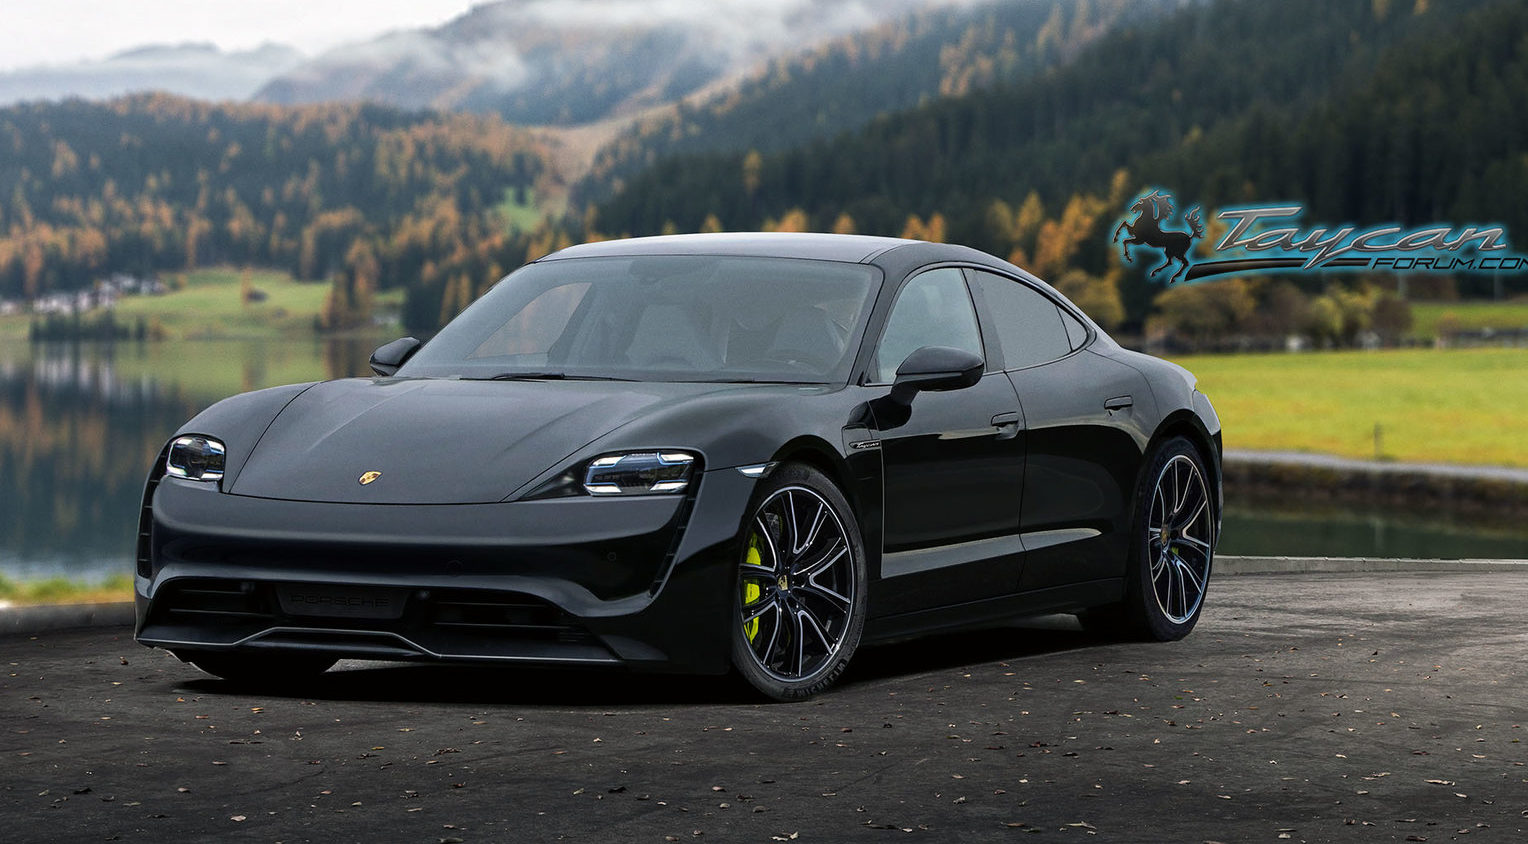 Porsche Taycan clocks 20,000 pre-order options